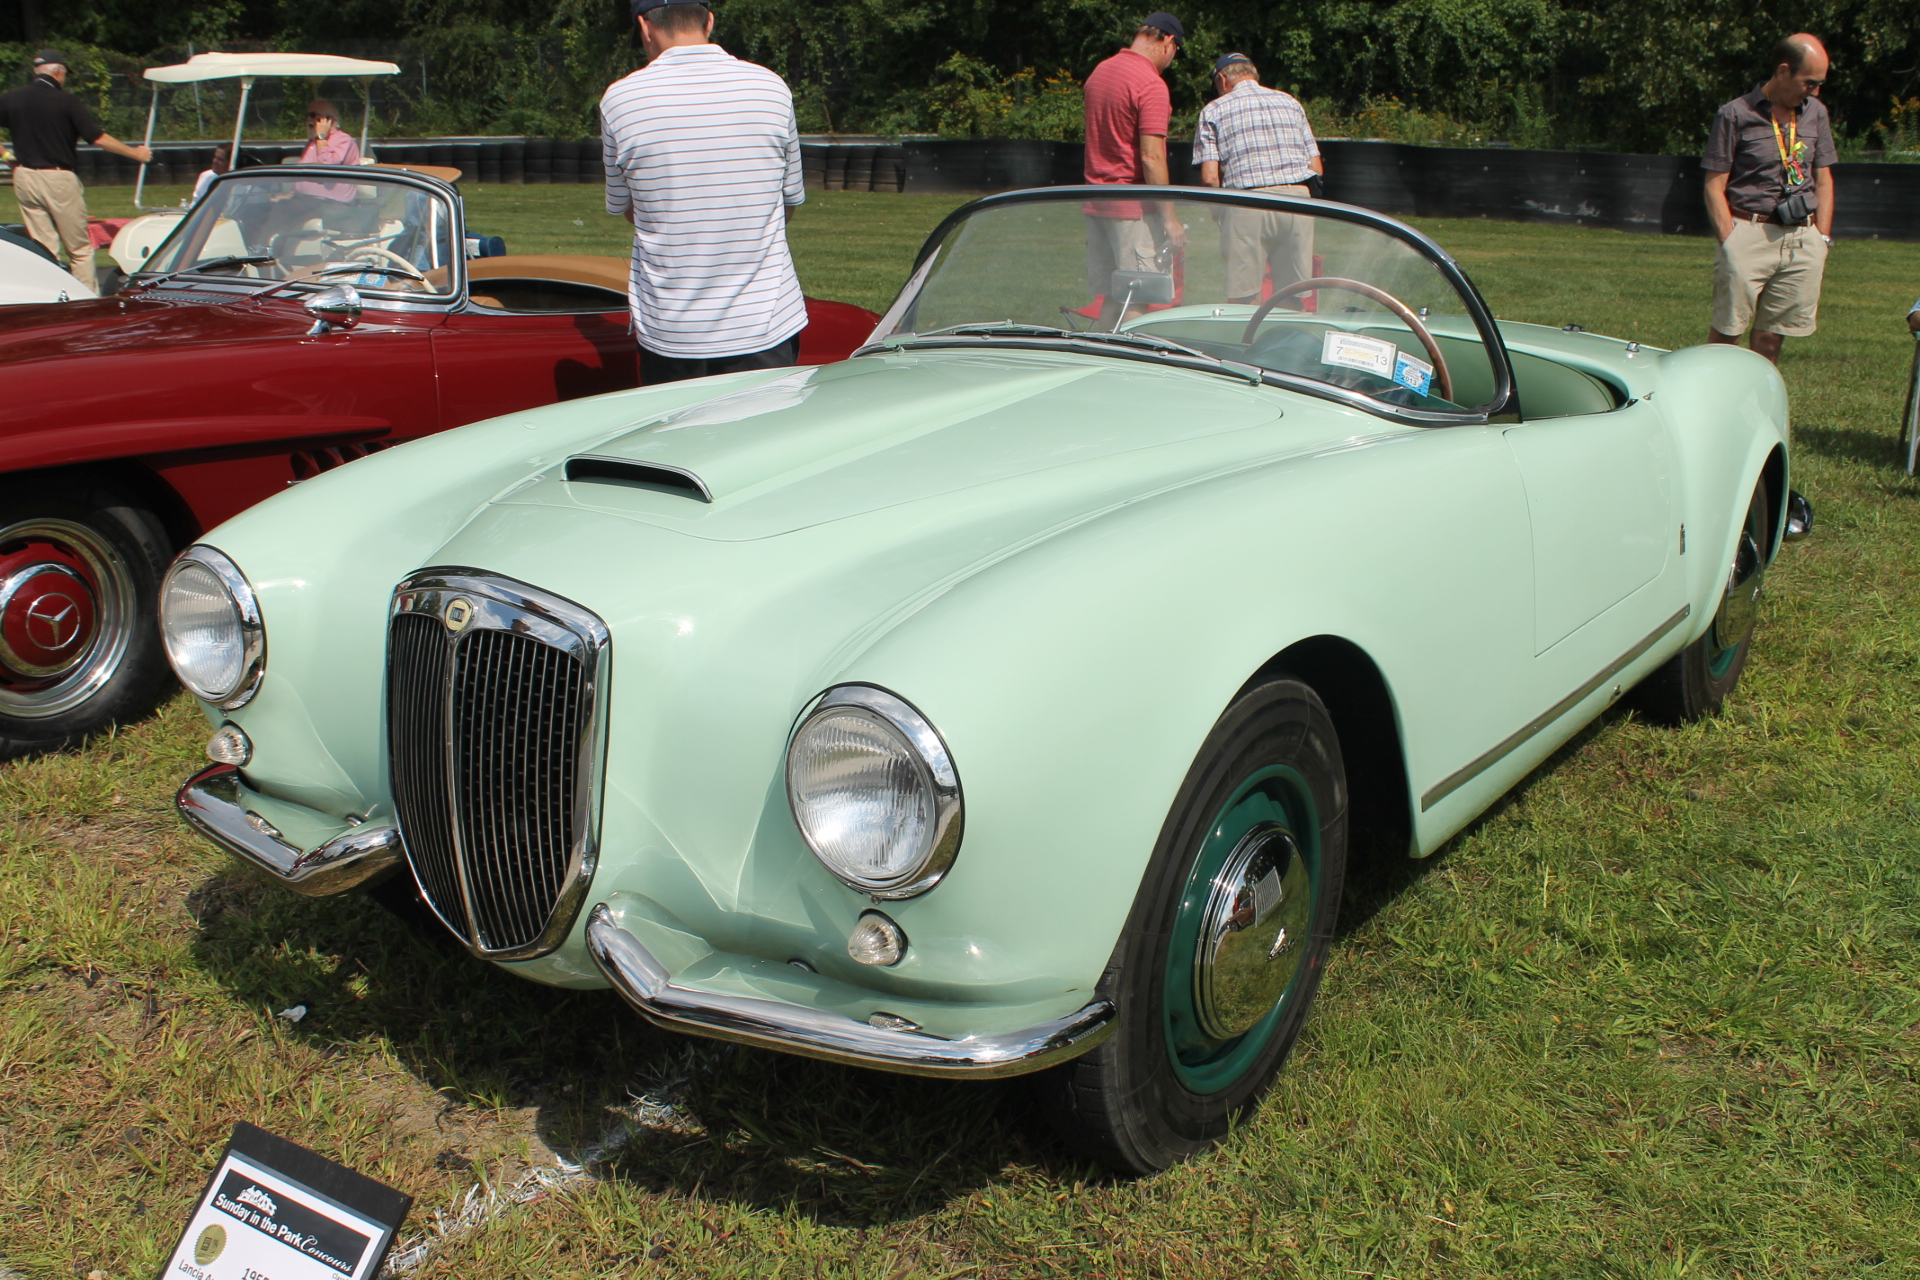 Mga Coupe 1959 as well Cadillac Fleetwood 1954 further Alfa Romeo 6c Rumored To Make A  eback In 2020 likewise C117872 moreover Renault Floride Et Caravelle En Provence. on 1954 alfa romeo